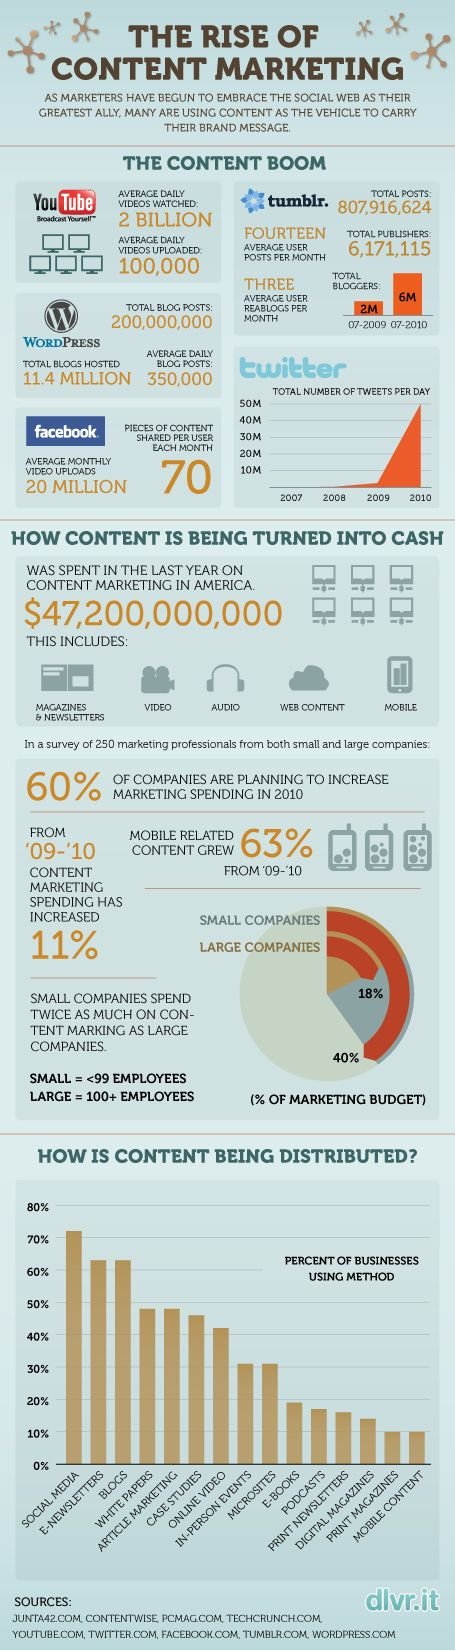 The Rise of Content Marketing [Infographic] #contentmarketing  #contentinfographics #socialmediainfographics  #content